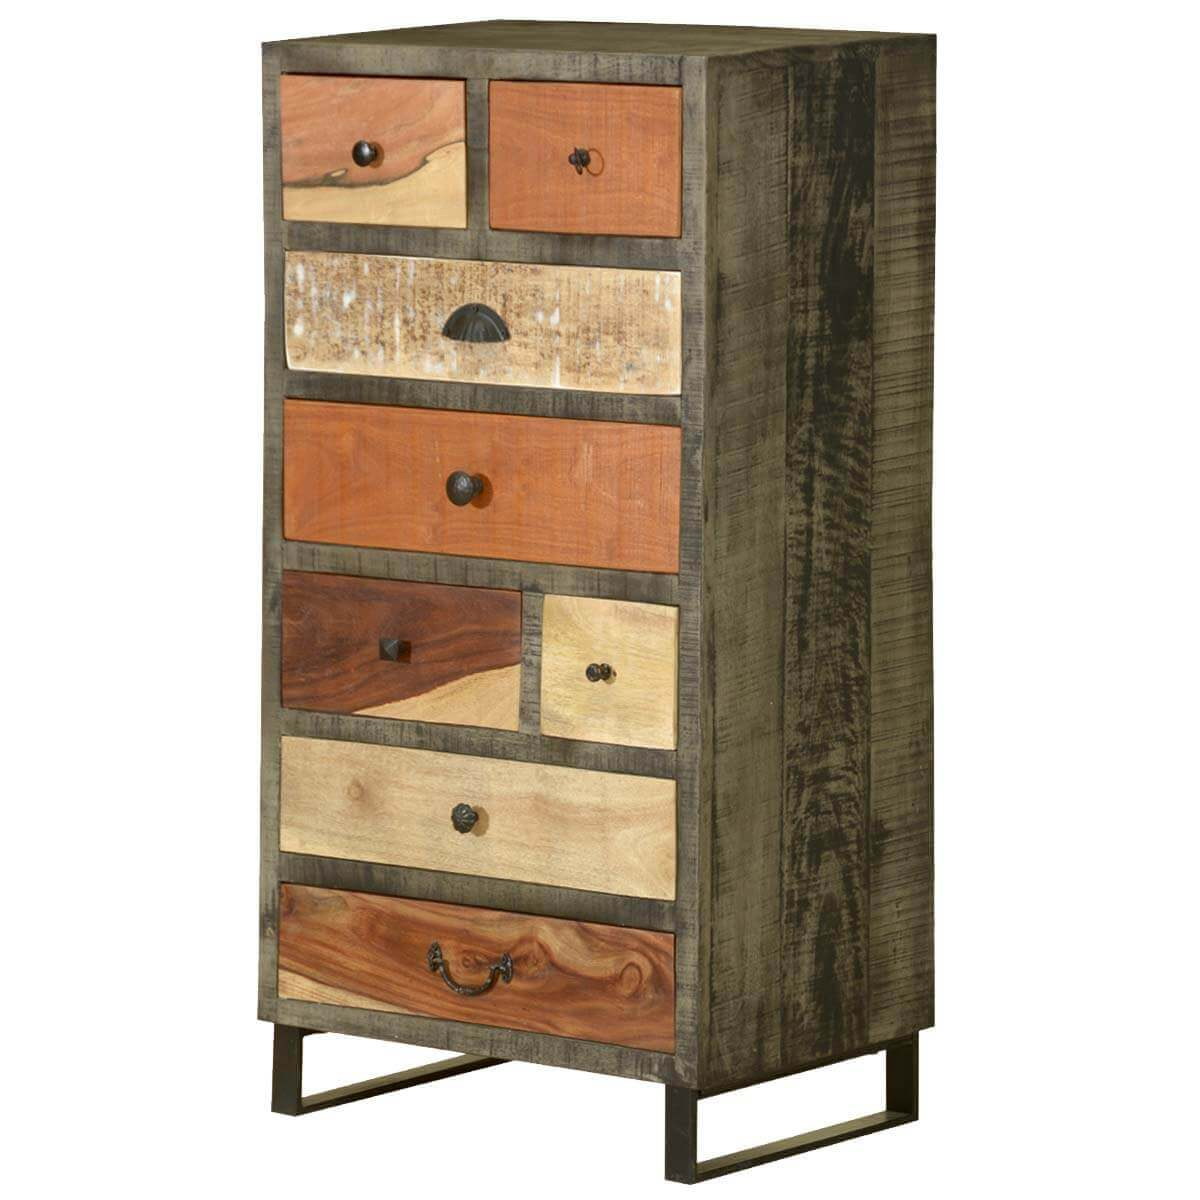 #987133 Wooden Patches Mango Wood & Iron 8 Drawer Dresser Chest with 1200x1200 px of Highly Rated Wood Drawer Chest 12001200 picture/photo @ avoidforclosure.info